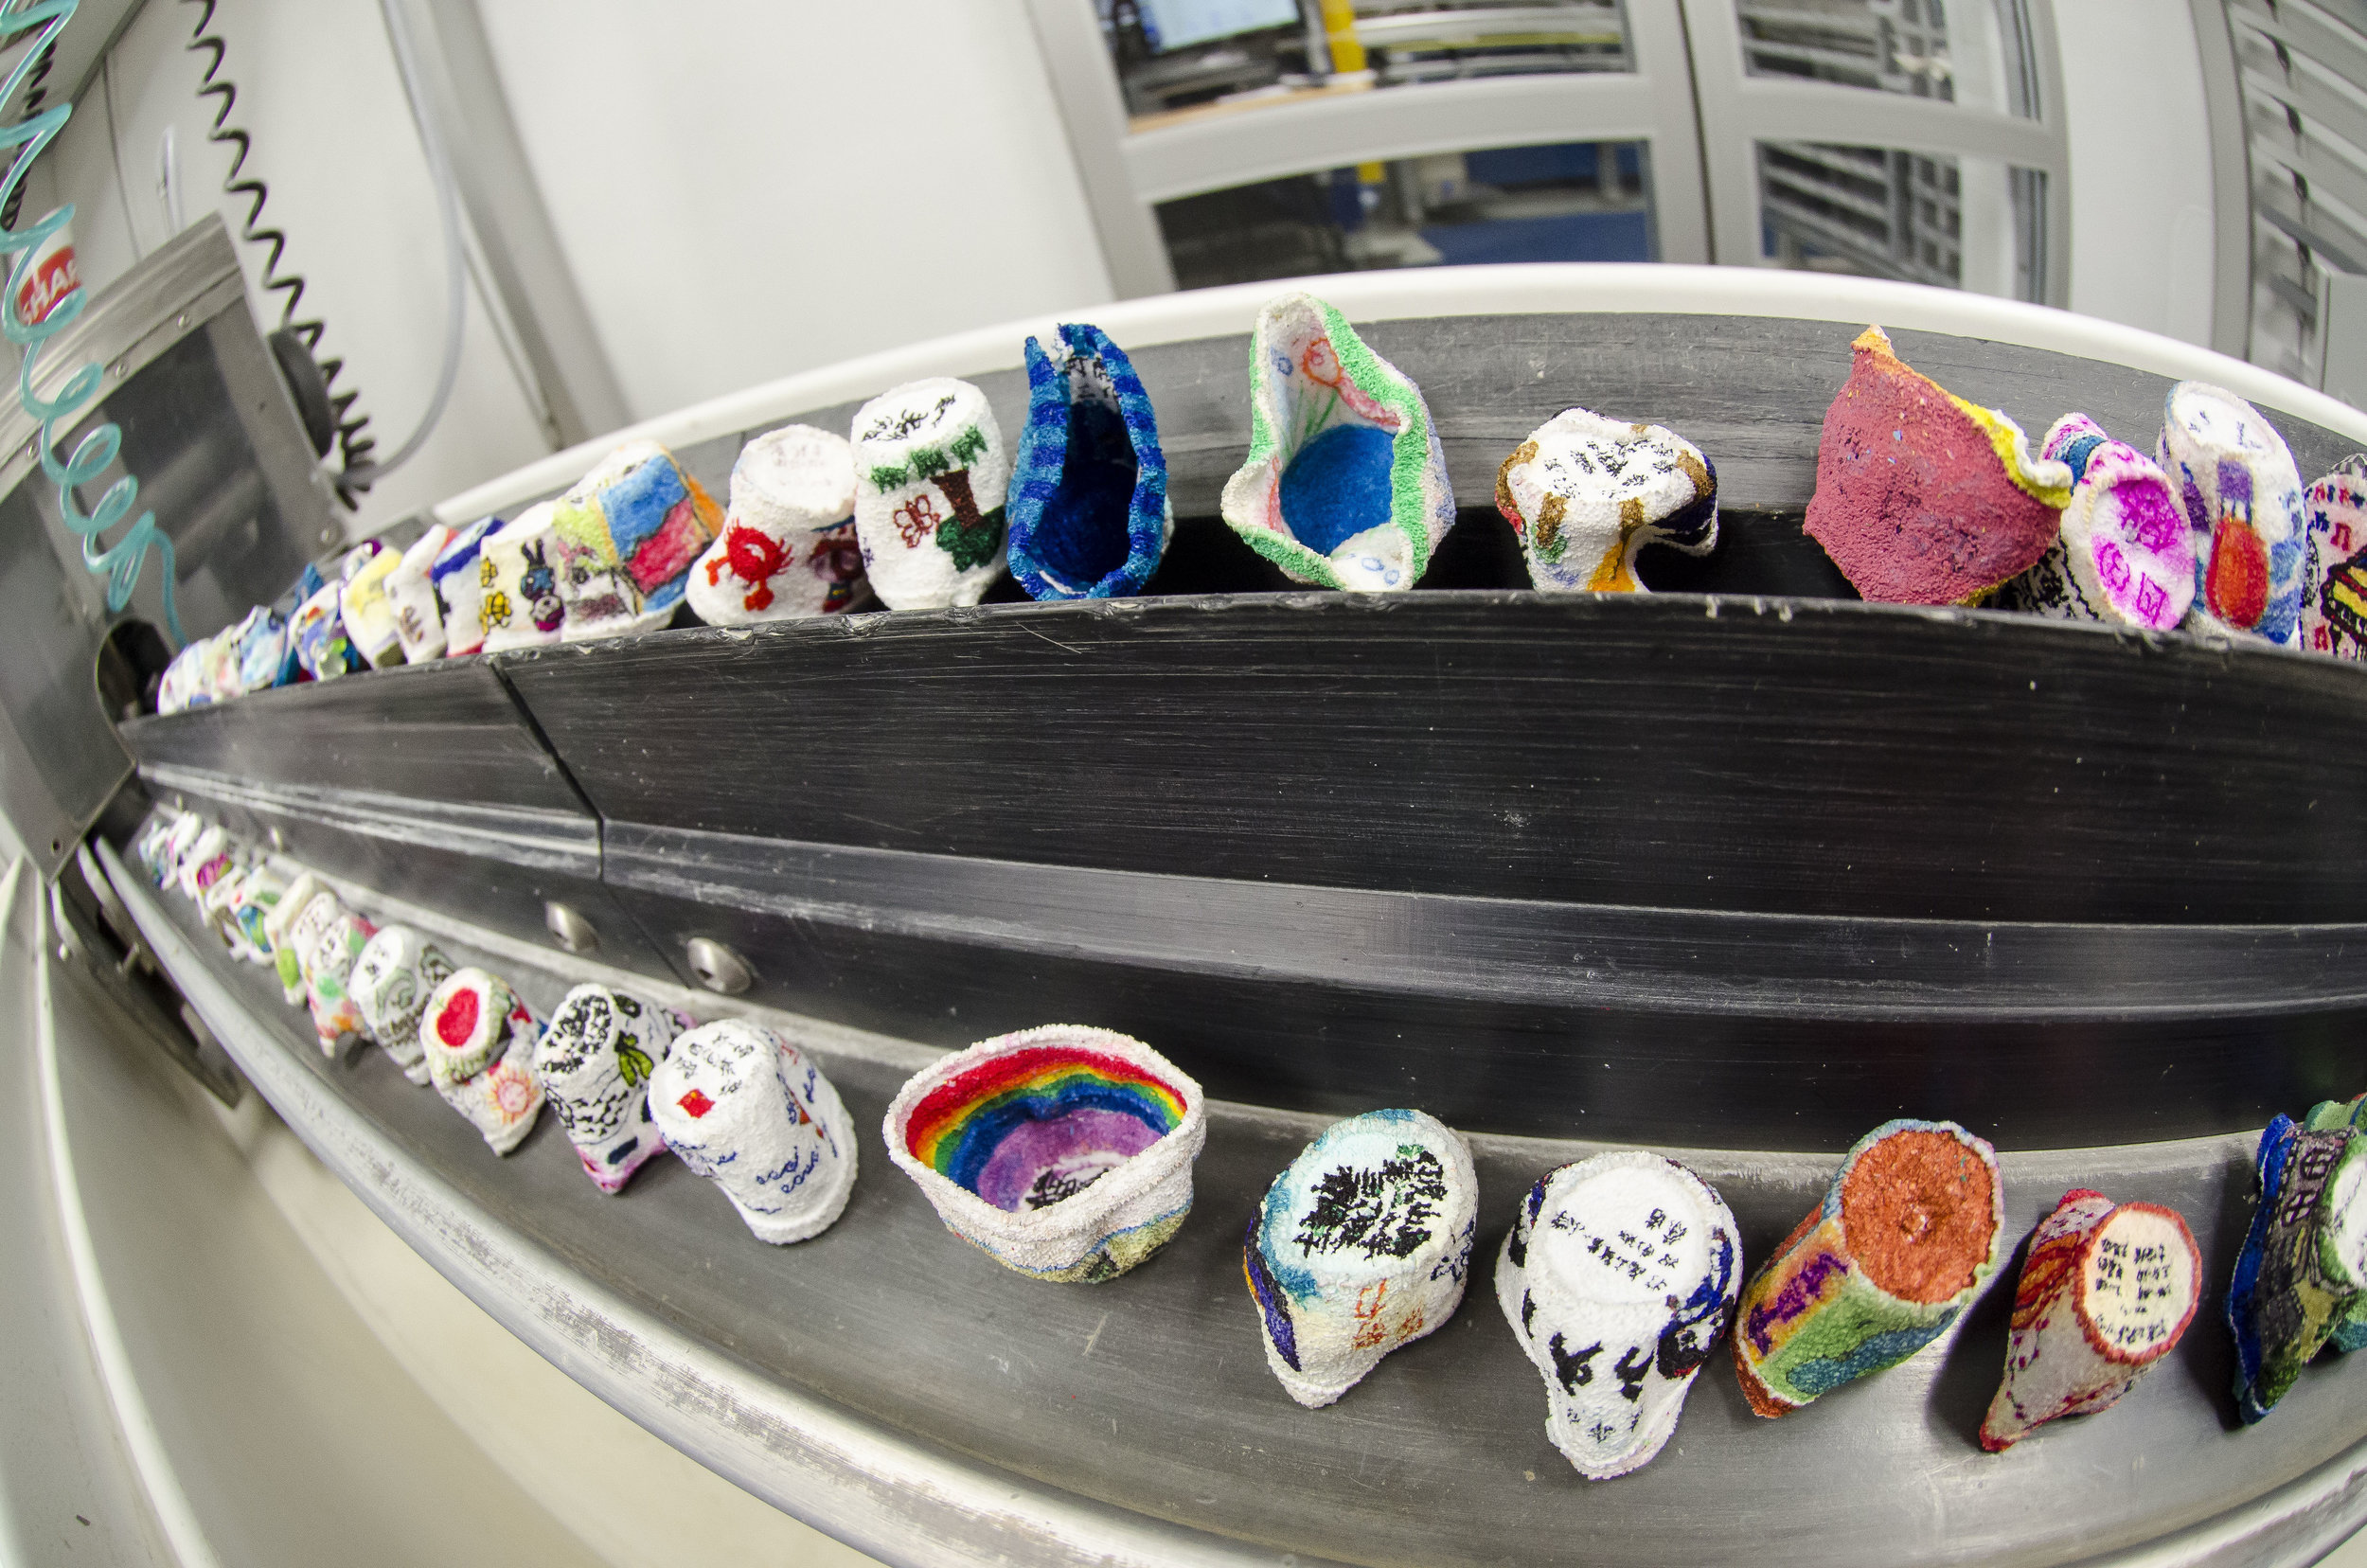 Foam cups shrank after being transported to the seafloor. Photo credit: Tim Fulton, IODP.